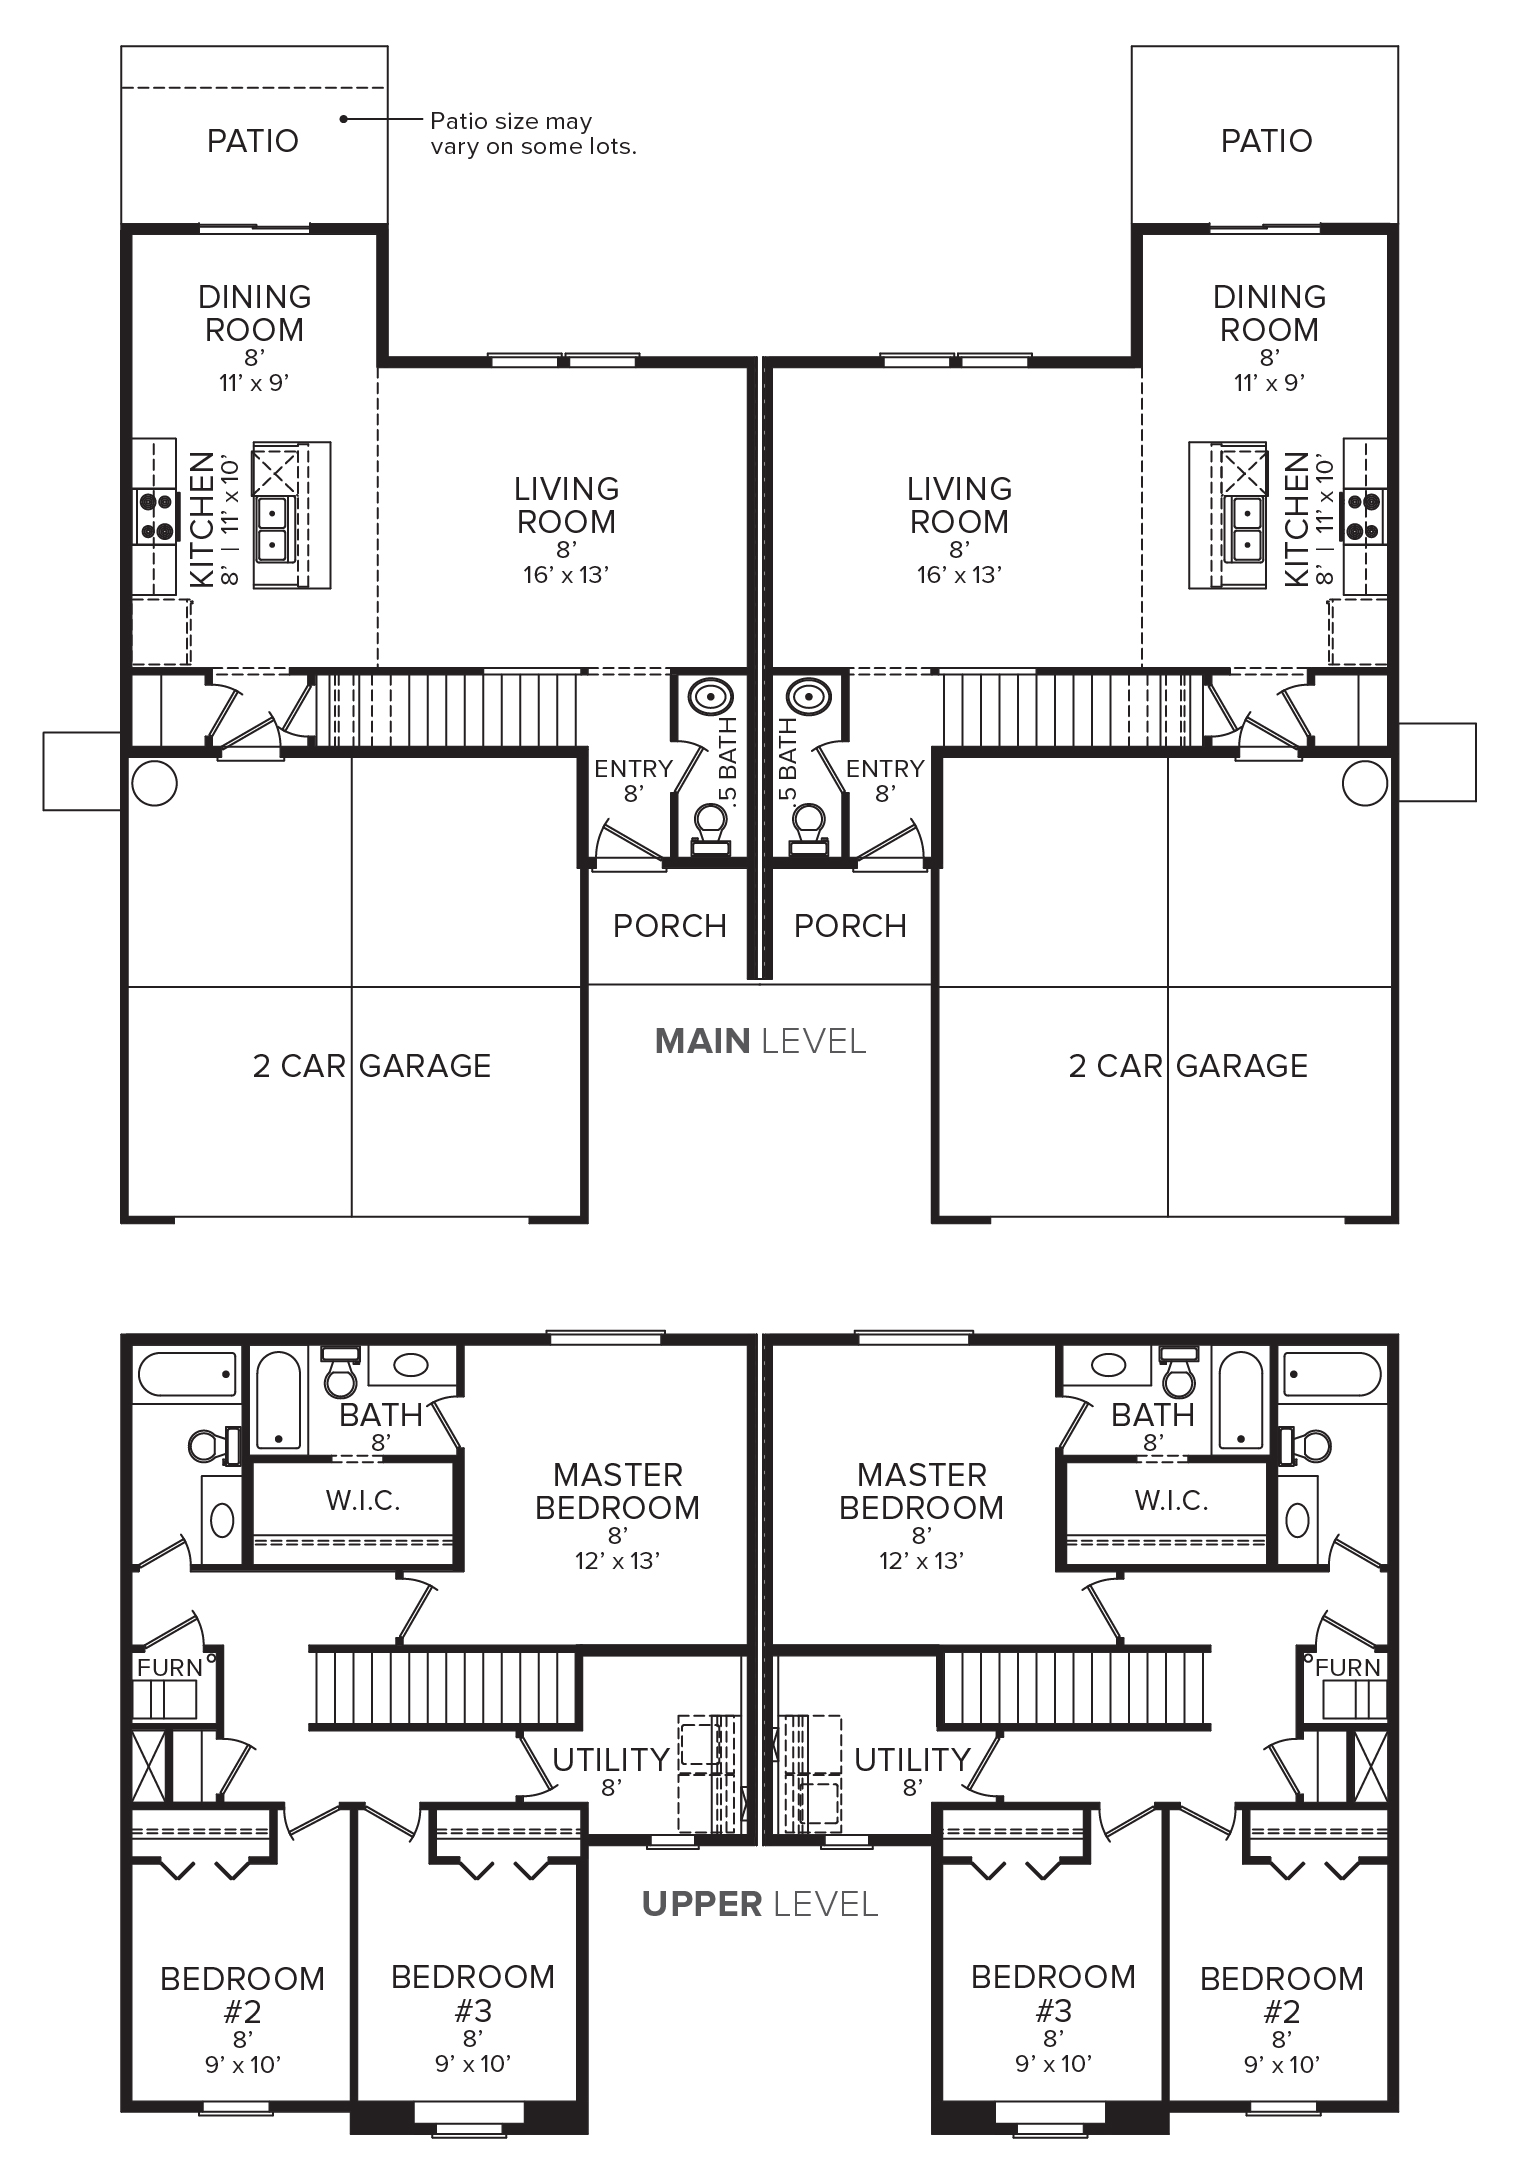 Layout image of Sawgrass Paired Home 1491 looking majestic